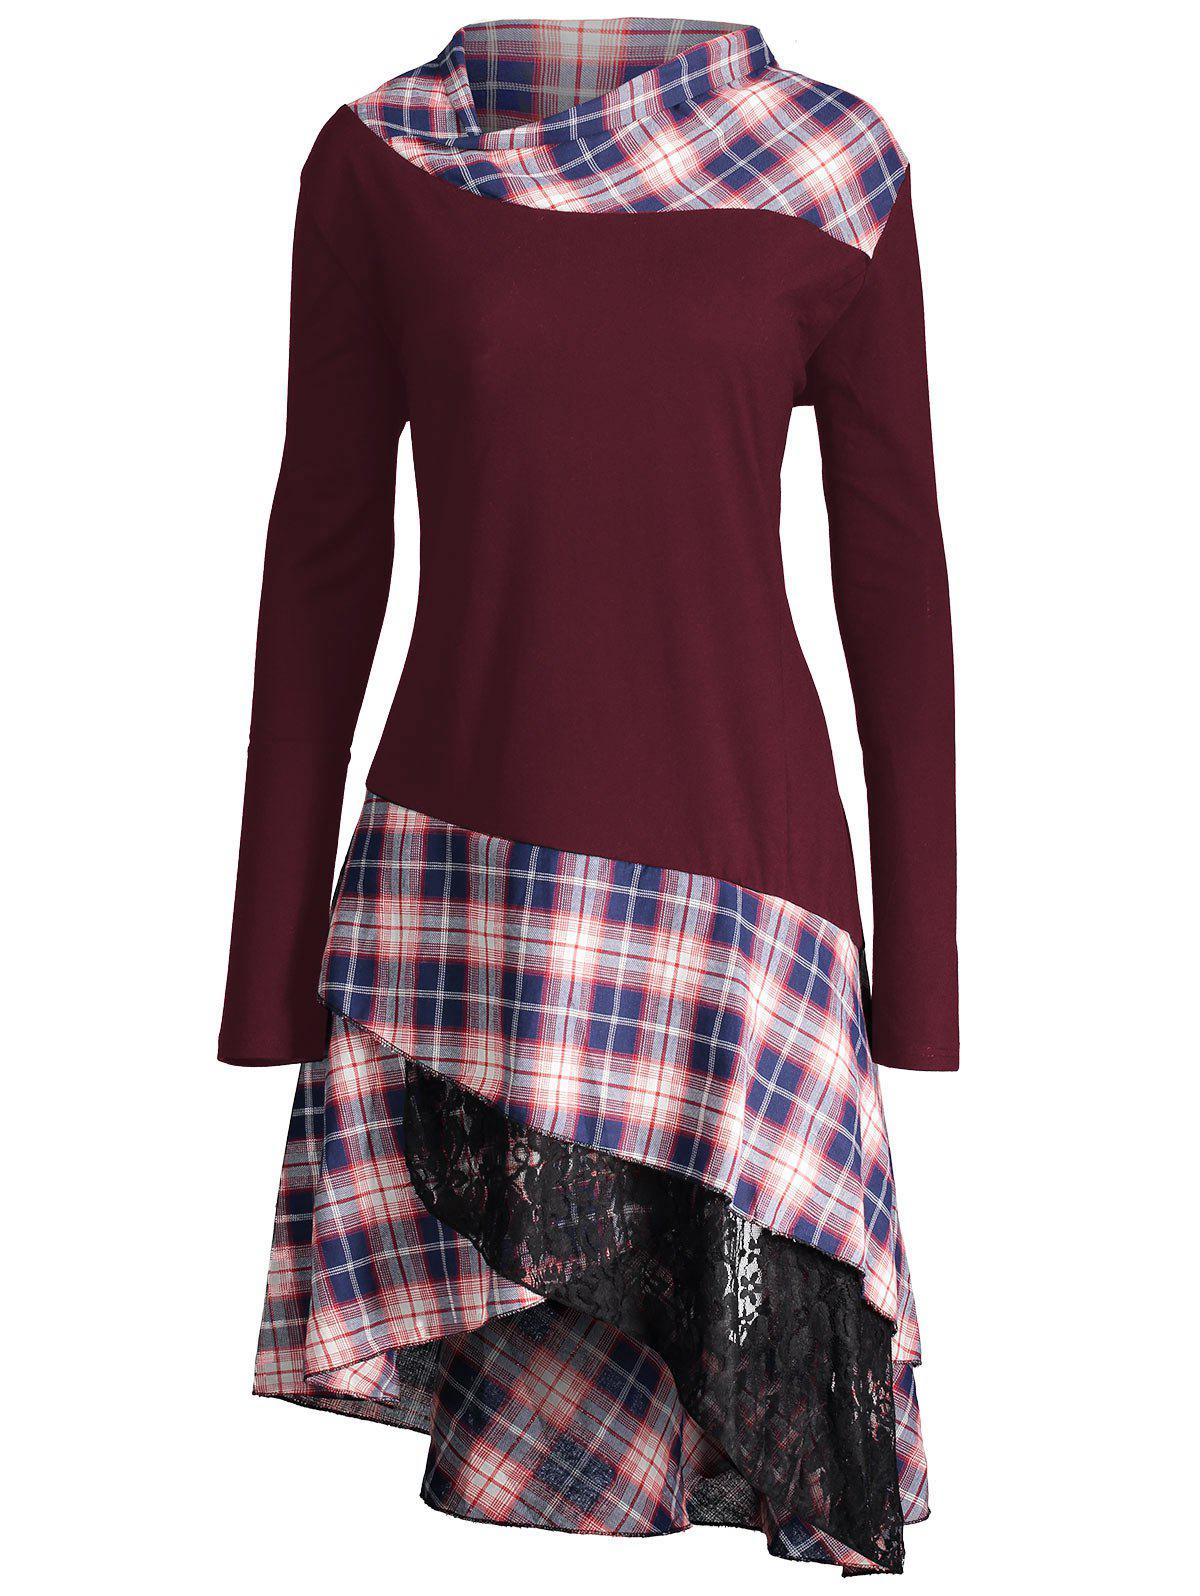 Long Plus Size Lace Plaid Panel TopWOMEN<br><br>Size: 3XL; Color: WINE RED; Material: Polyester,Spandex; Shirt Length: Long; Sleeve Length: Full; Collar: Mock Neck; Style: Fashion; Season: Fall,Spring; Pattern Type: Plaid; Weight: 0.4100kg; Package Contents: 1 x Top;